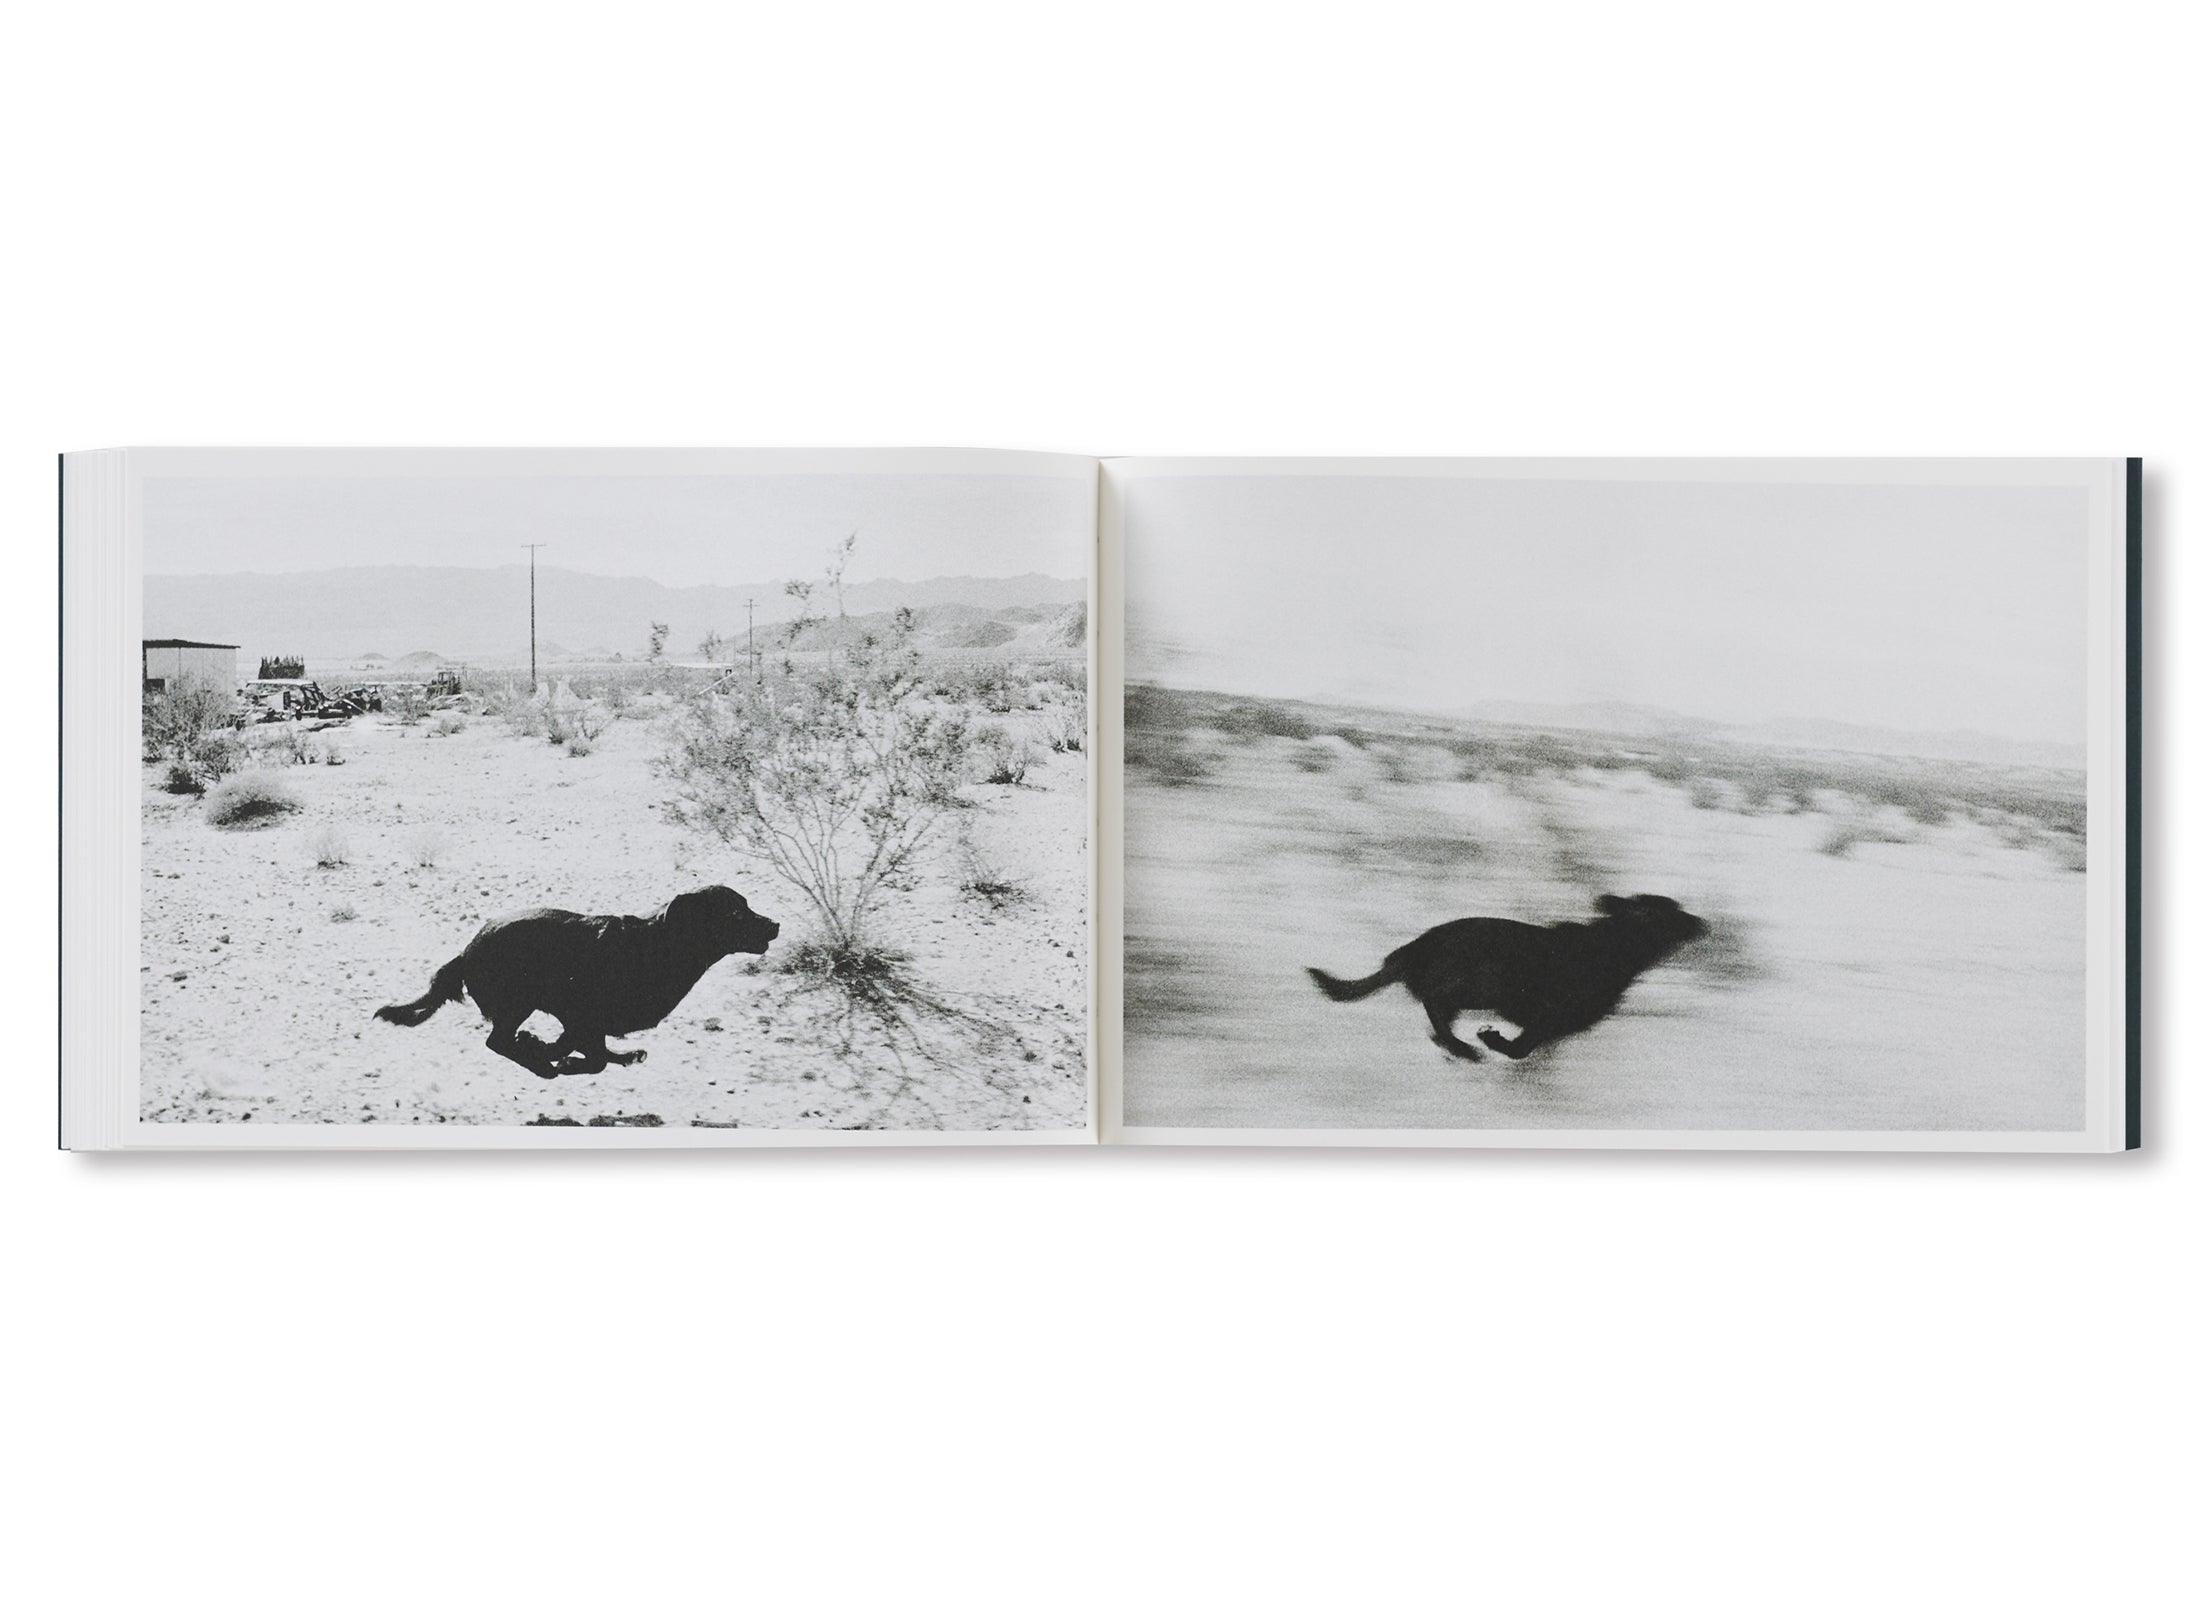 PICTURES FROM MOVING CARS by Joel Meyerowitz, Daido Moriyama, John Divola